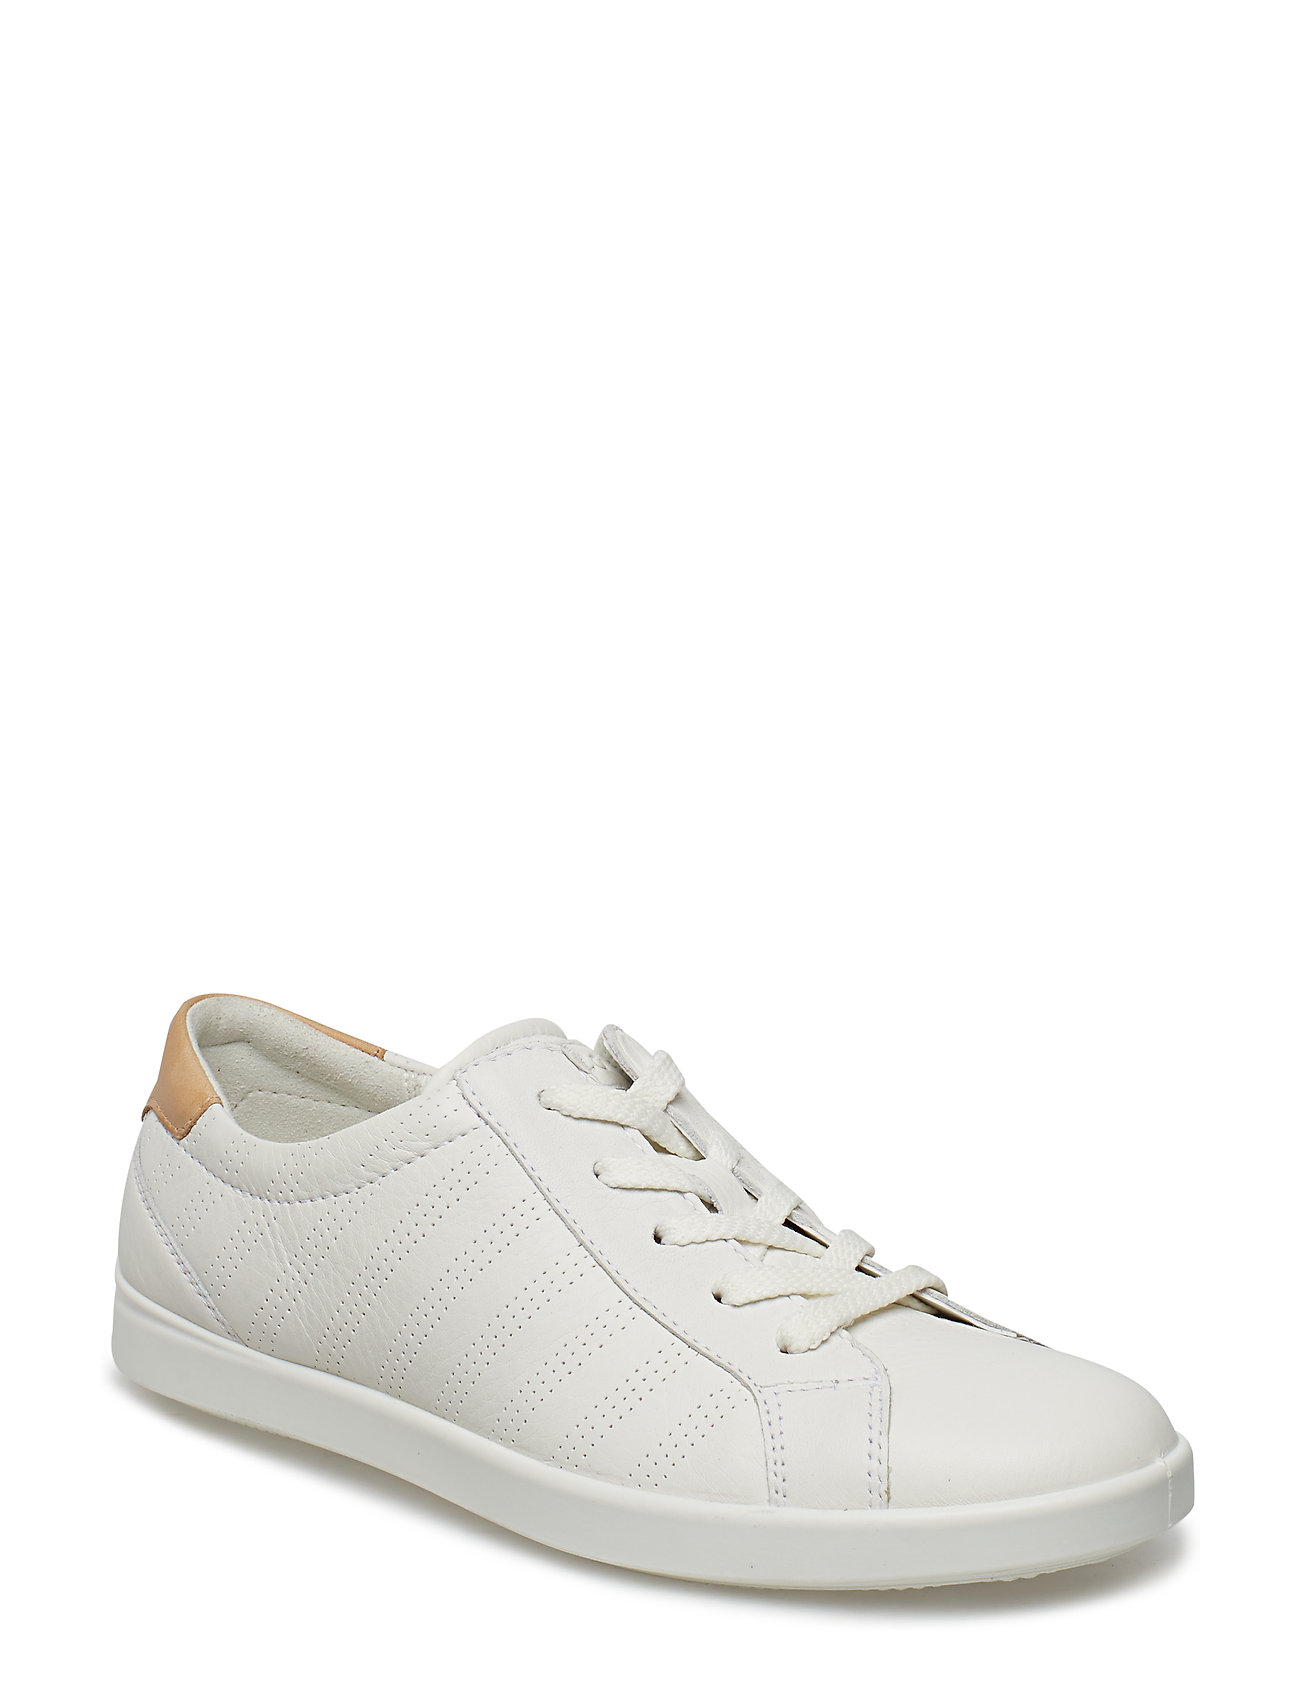 Image of Leisure Low-top Sneakers Hvid ECCO (3484634399)